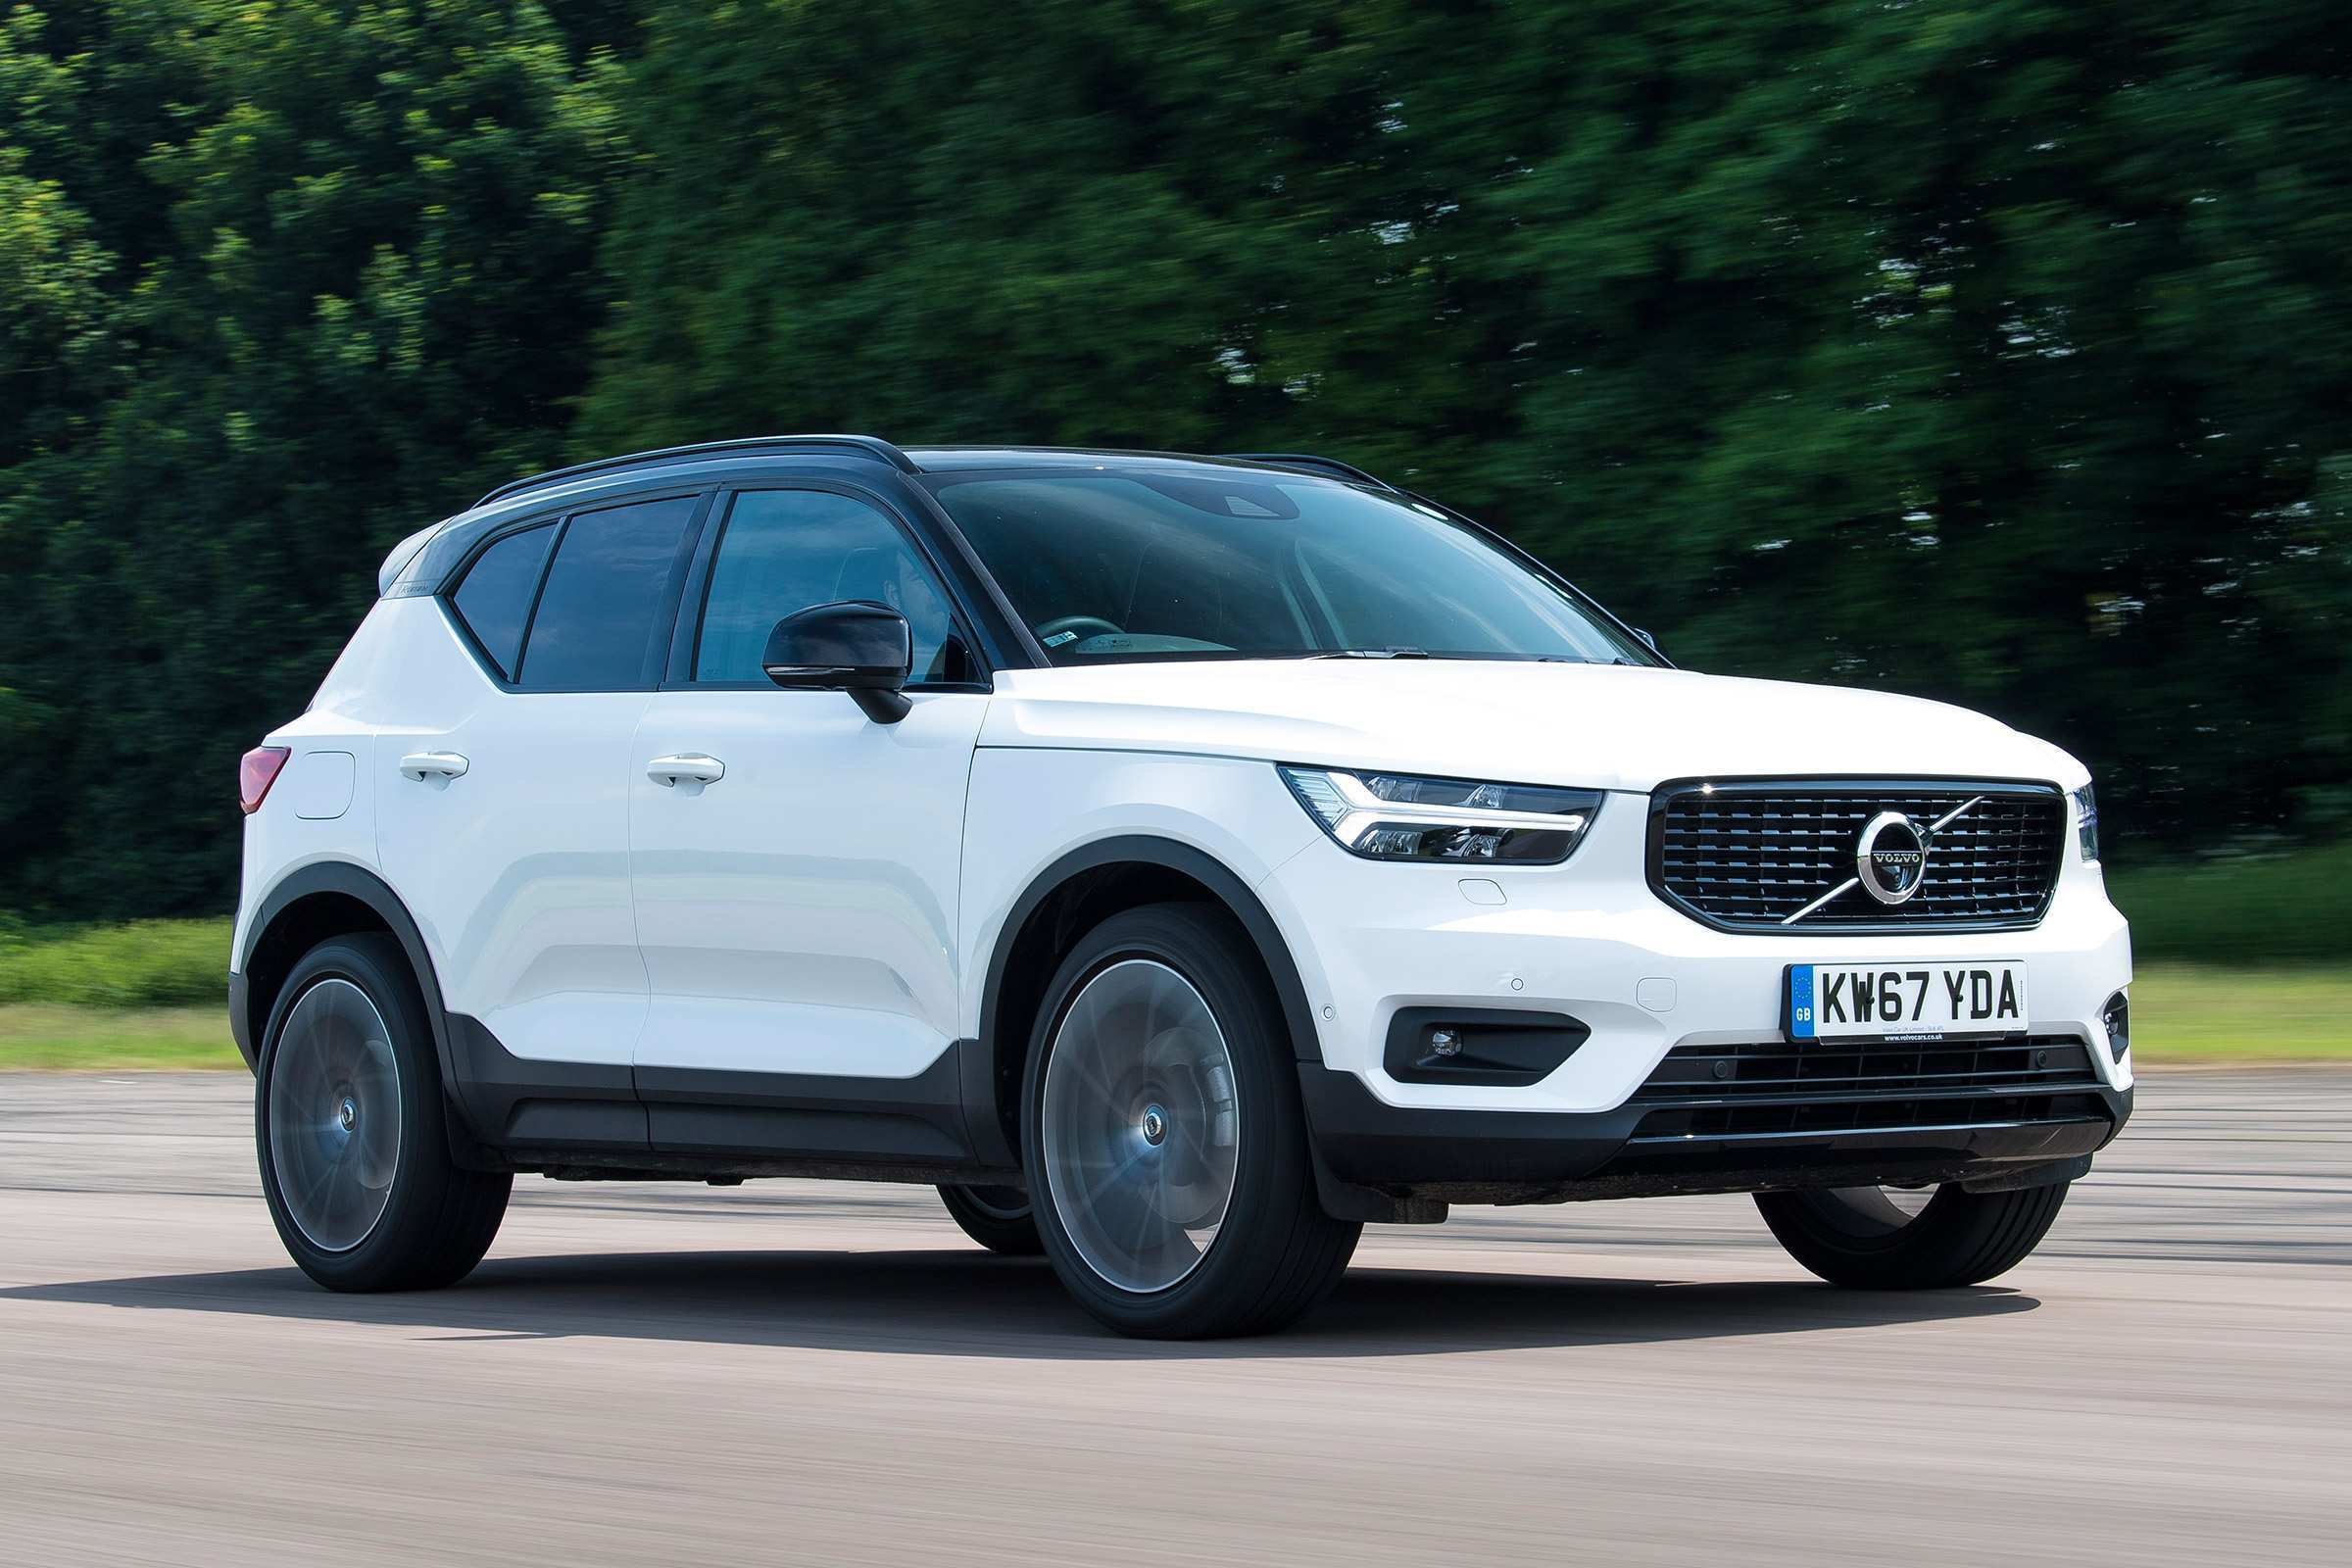 17 Concept of 2019 Volvo Xc40 Owners Manual Model for 2019 Volvo Xc40 Owners Manual